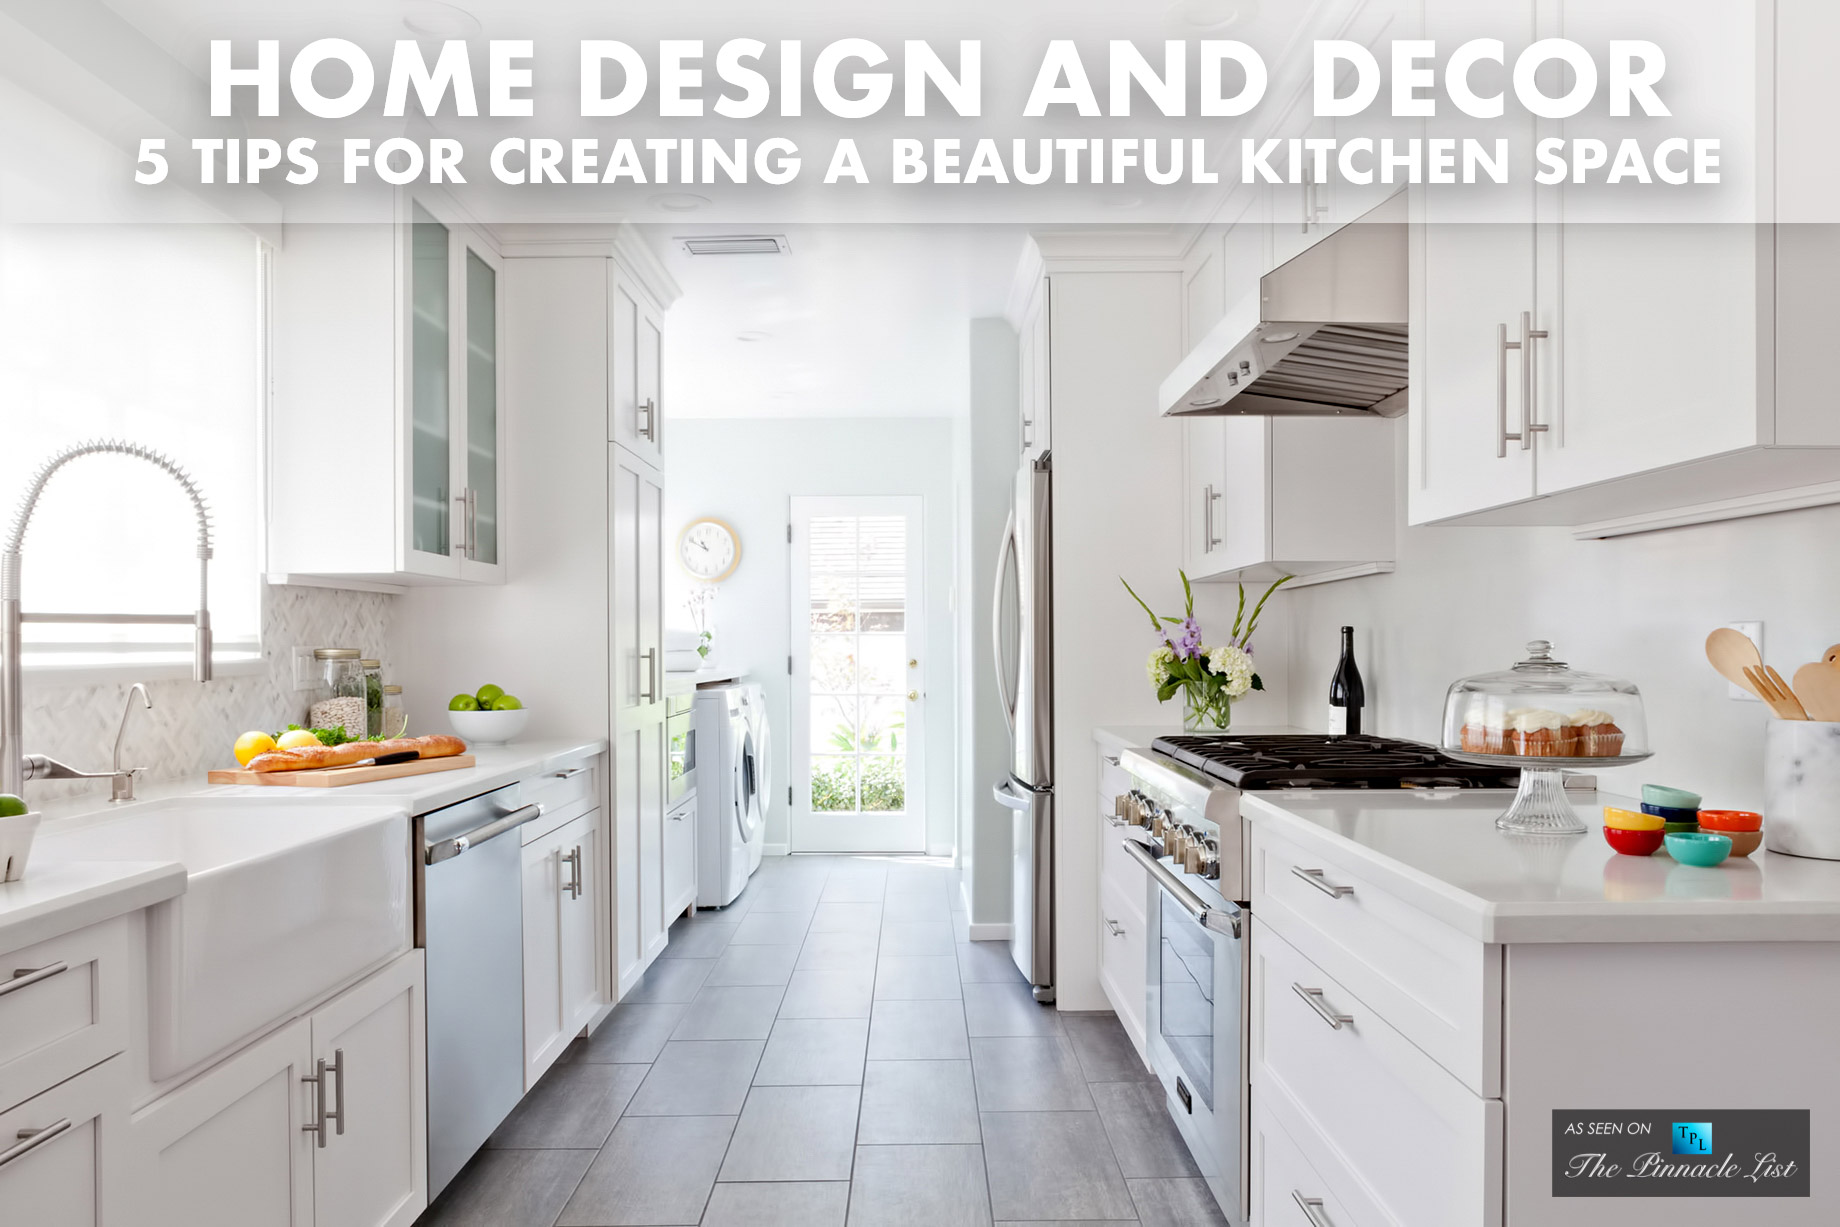 Home Design and Decor - 5 Tips for Creating a Beautiful Kitchen Space